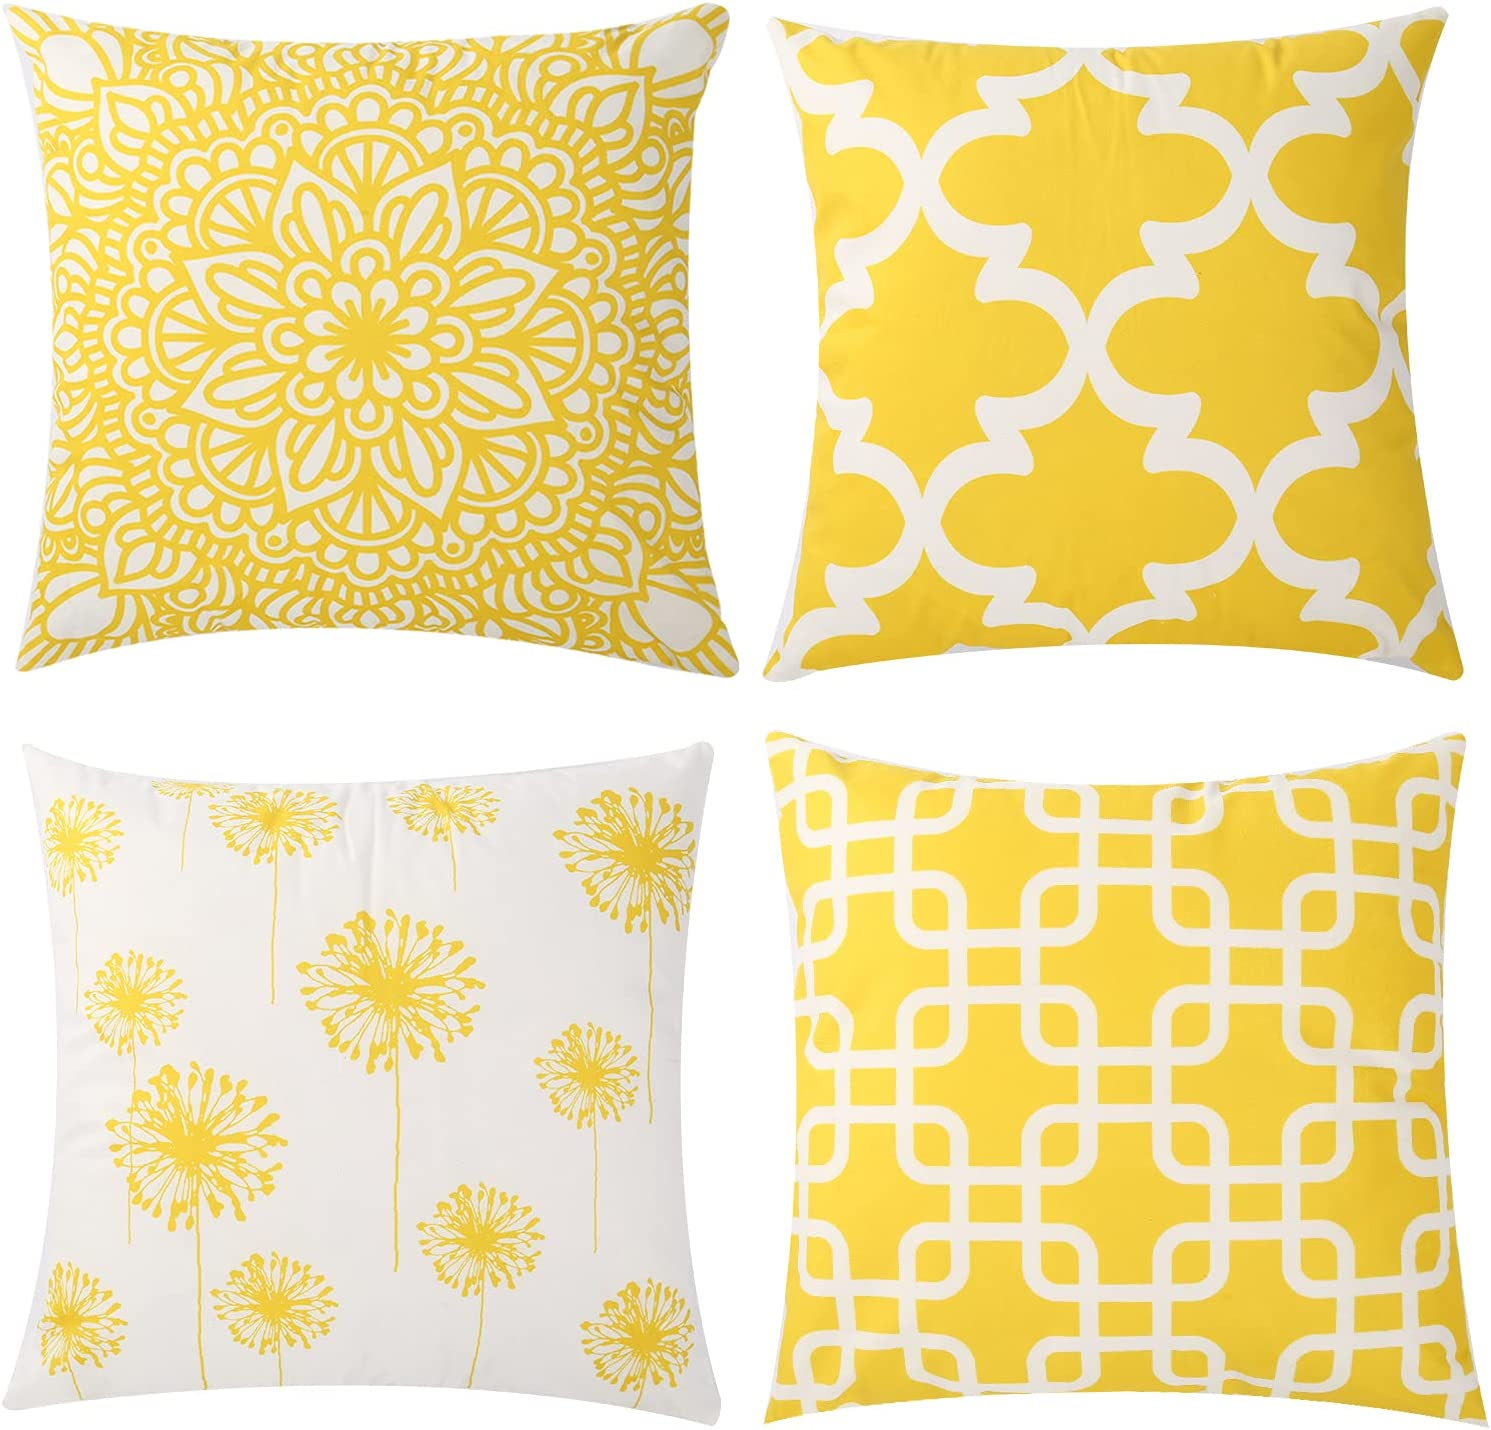 Percy Wind Set of 4 Throw Pillow Covers Modern Decoration Pillow Case Cushion Cover for Bedroom Sofa Car Home Decor Geometric Accent Cushion Square Pillowcase 18 x 18 inches (Yellow)